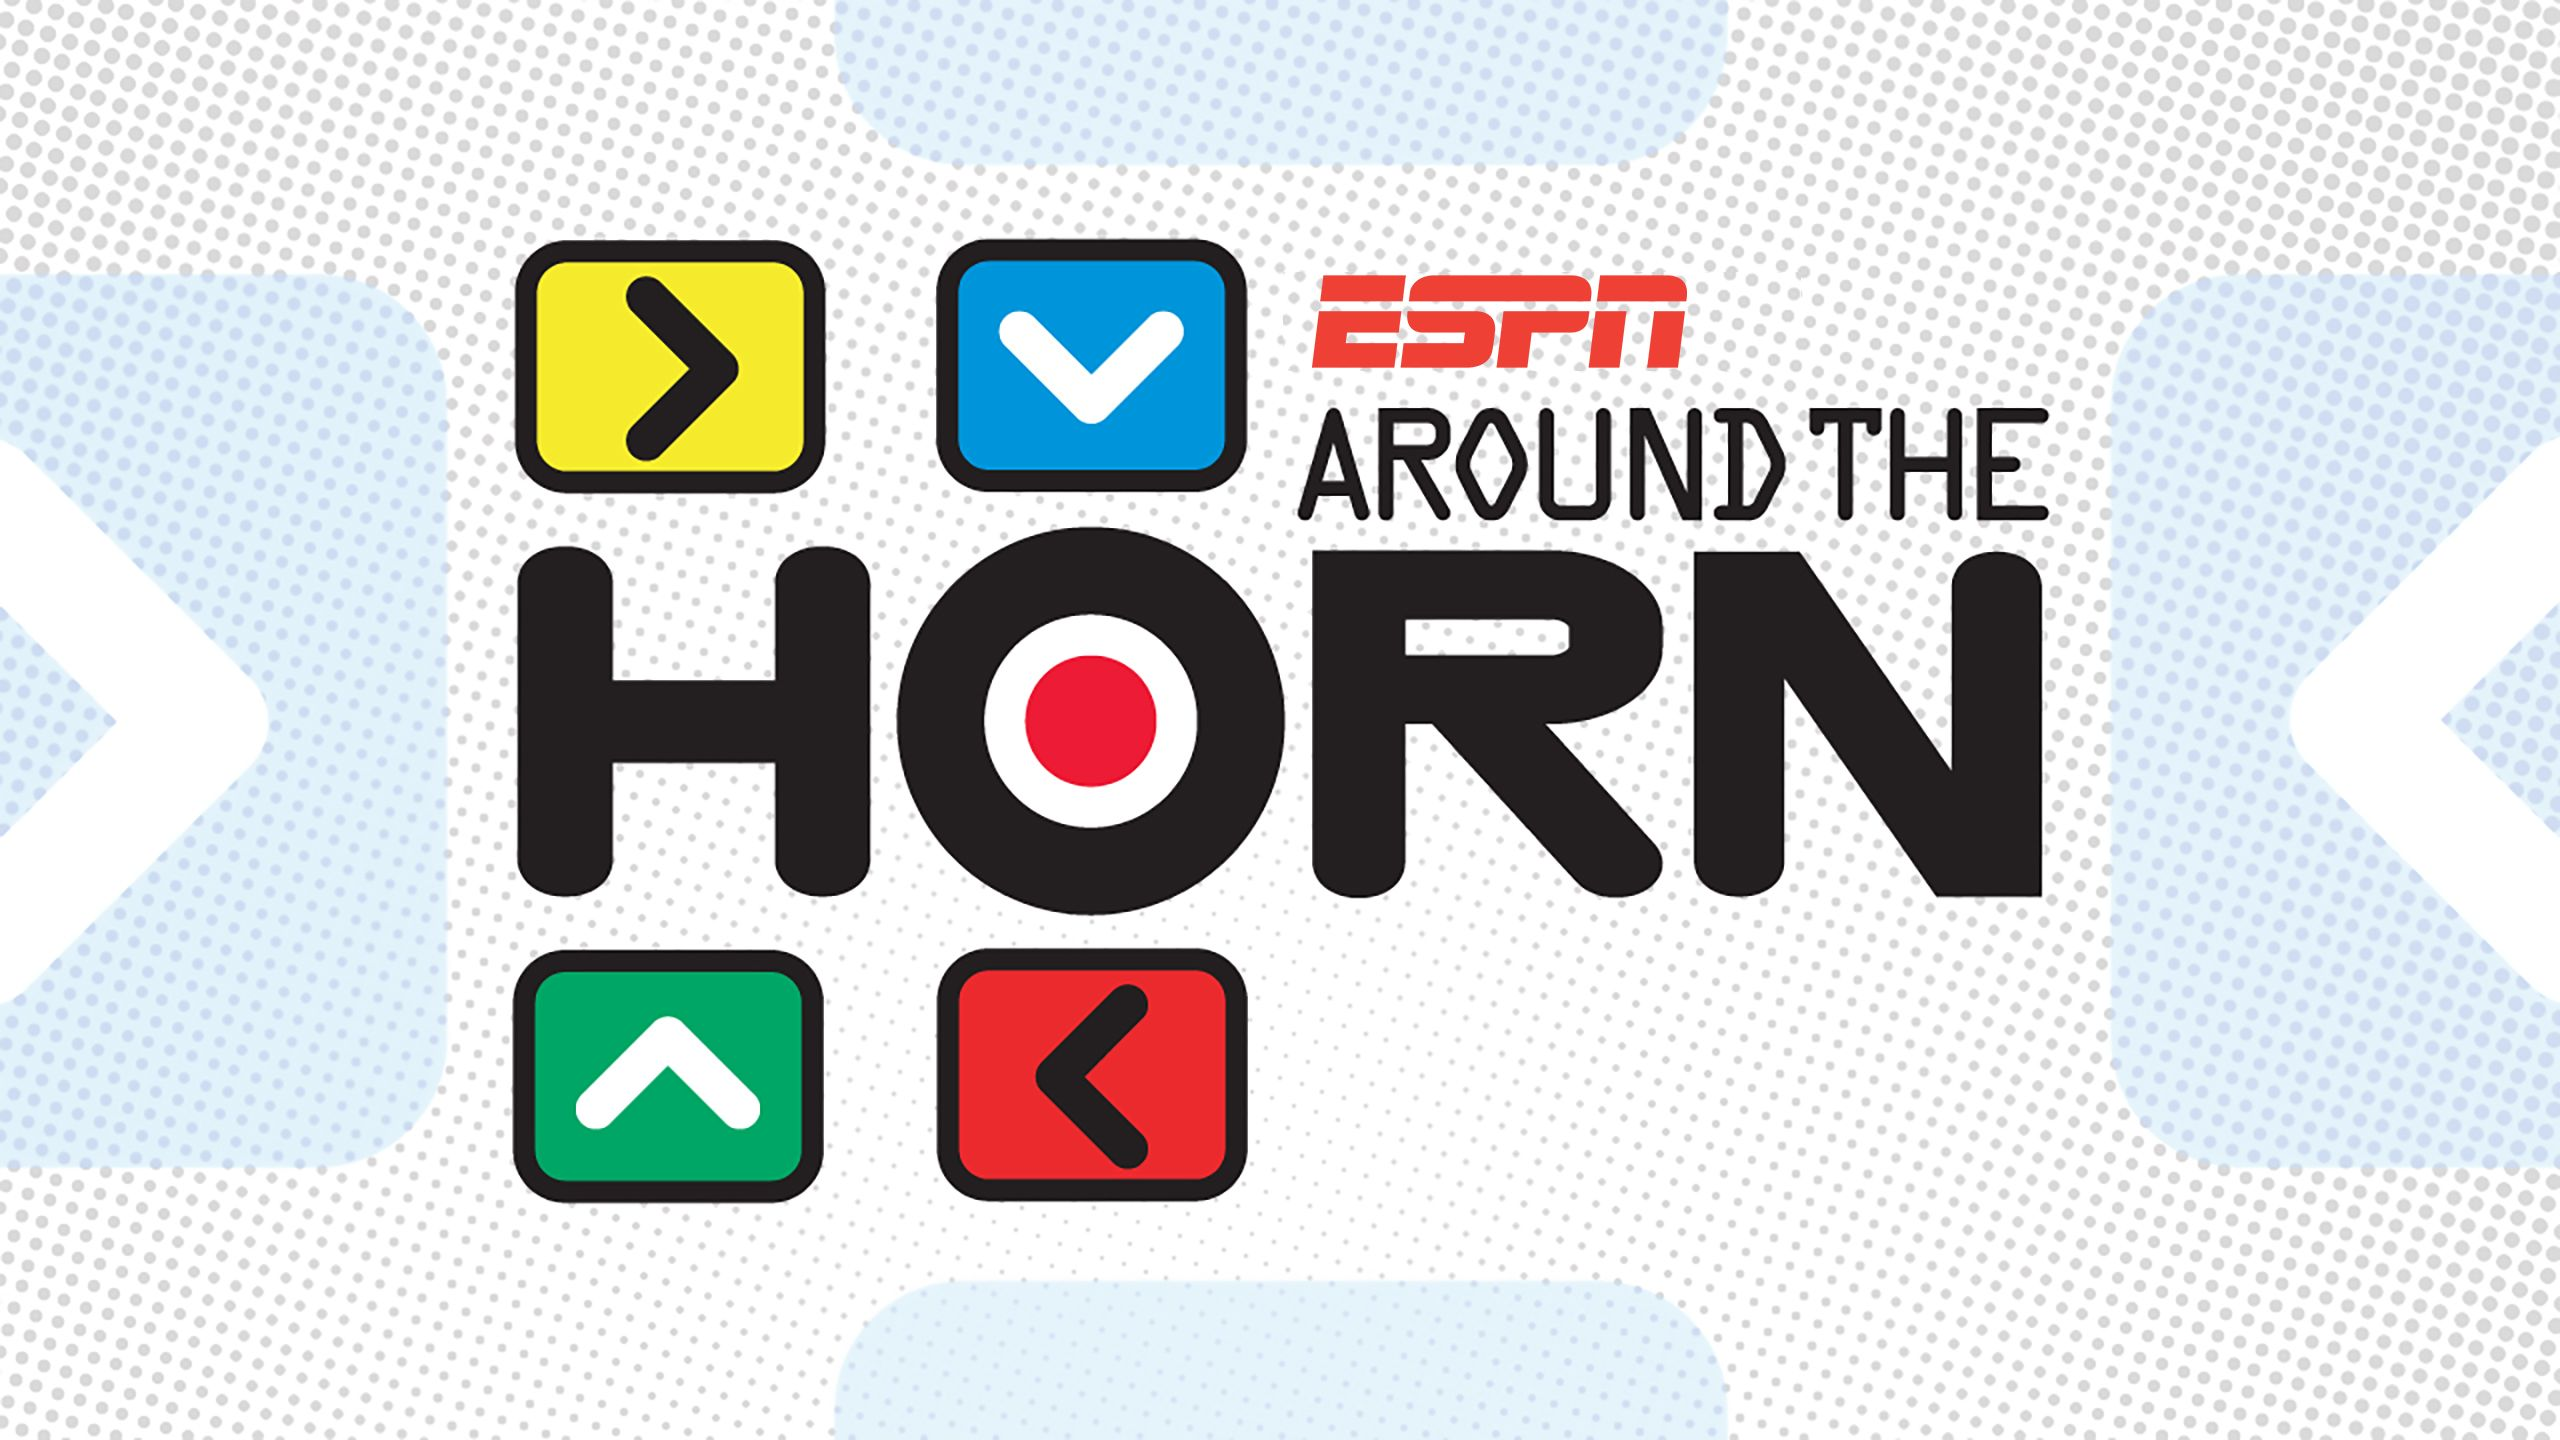 Thu, 3/22 - Around The Horn